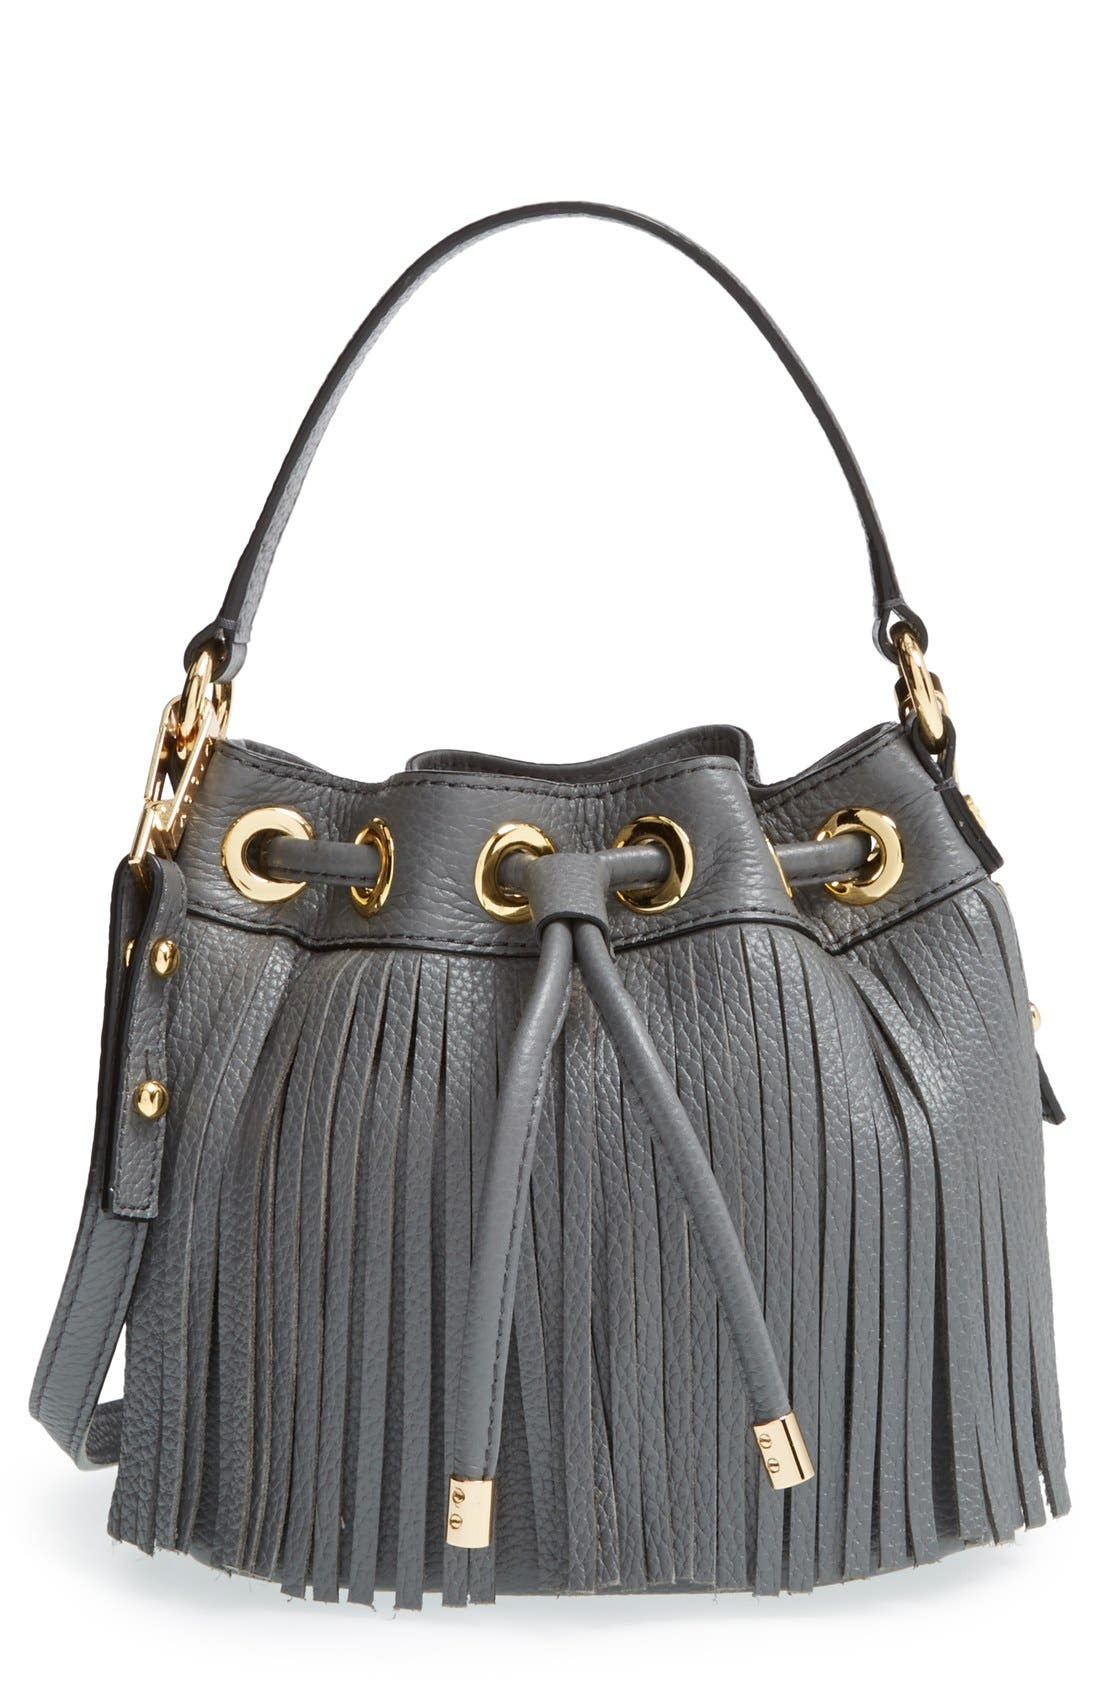 Main Image - Milly 'Small Essex' Fringed Leather Drawstring Bag